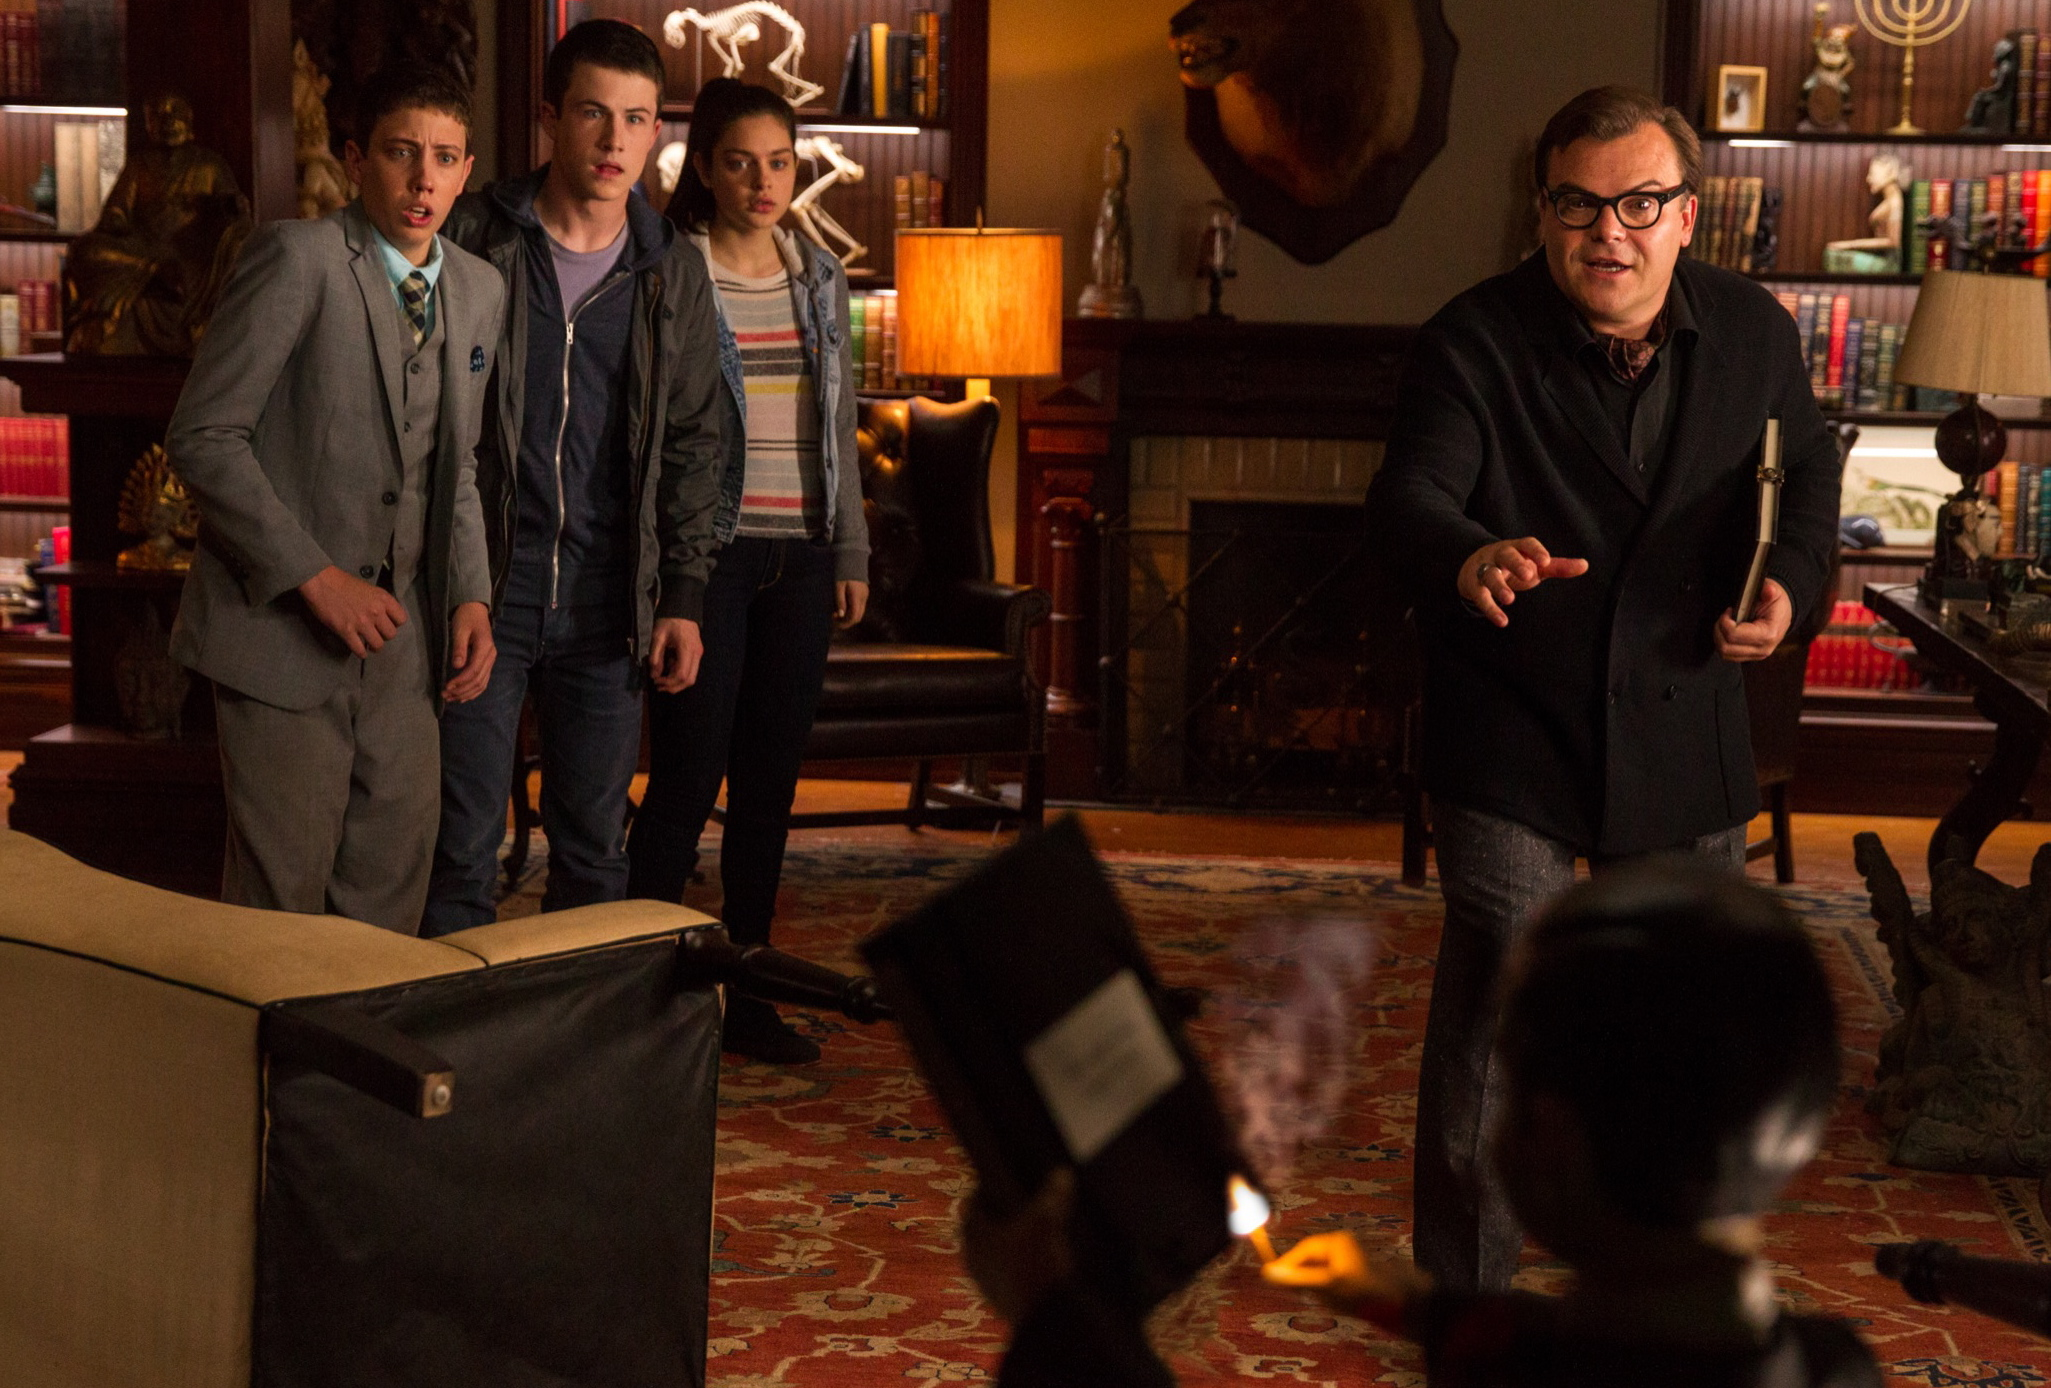 Goosebumps Movie Is Full Of Surprises!